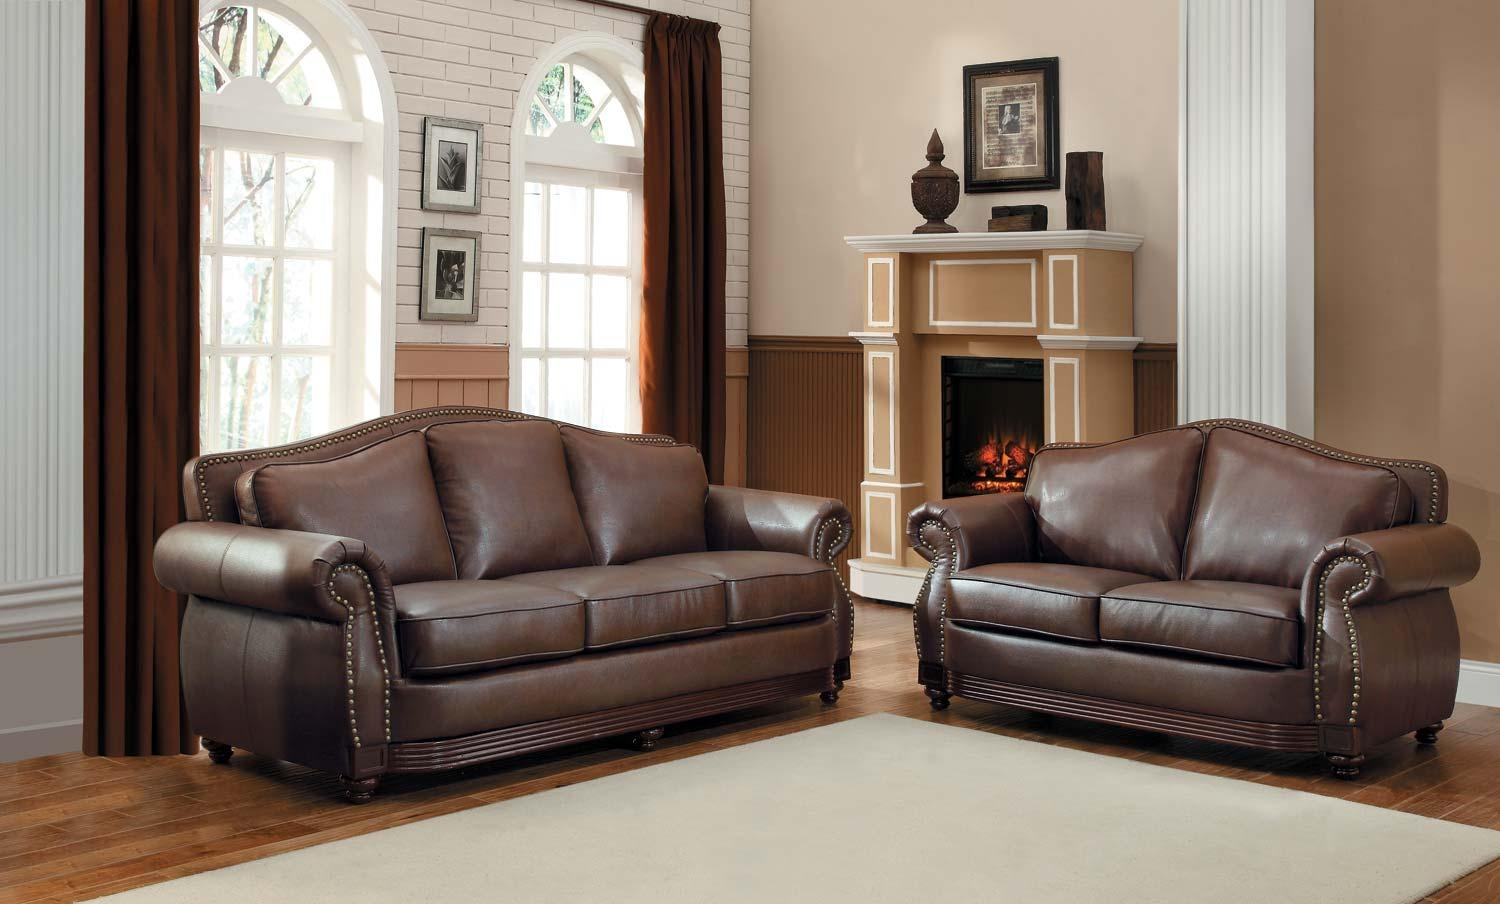 Homelegance Midwood Bonded Leather Sofa Collection – Dark Brown Intended For Bonded Leather Sofas (Image 14 of 20)